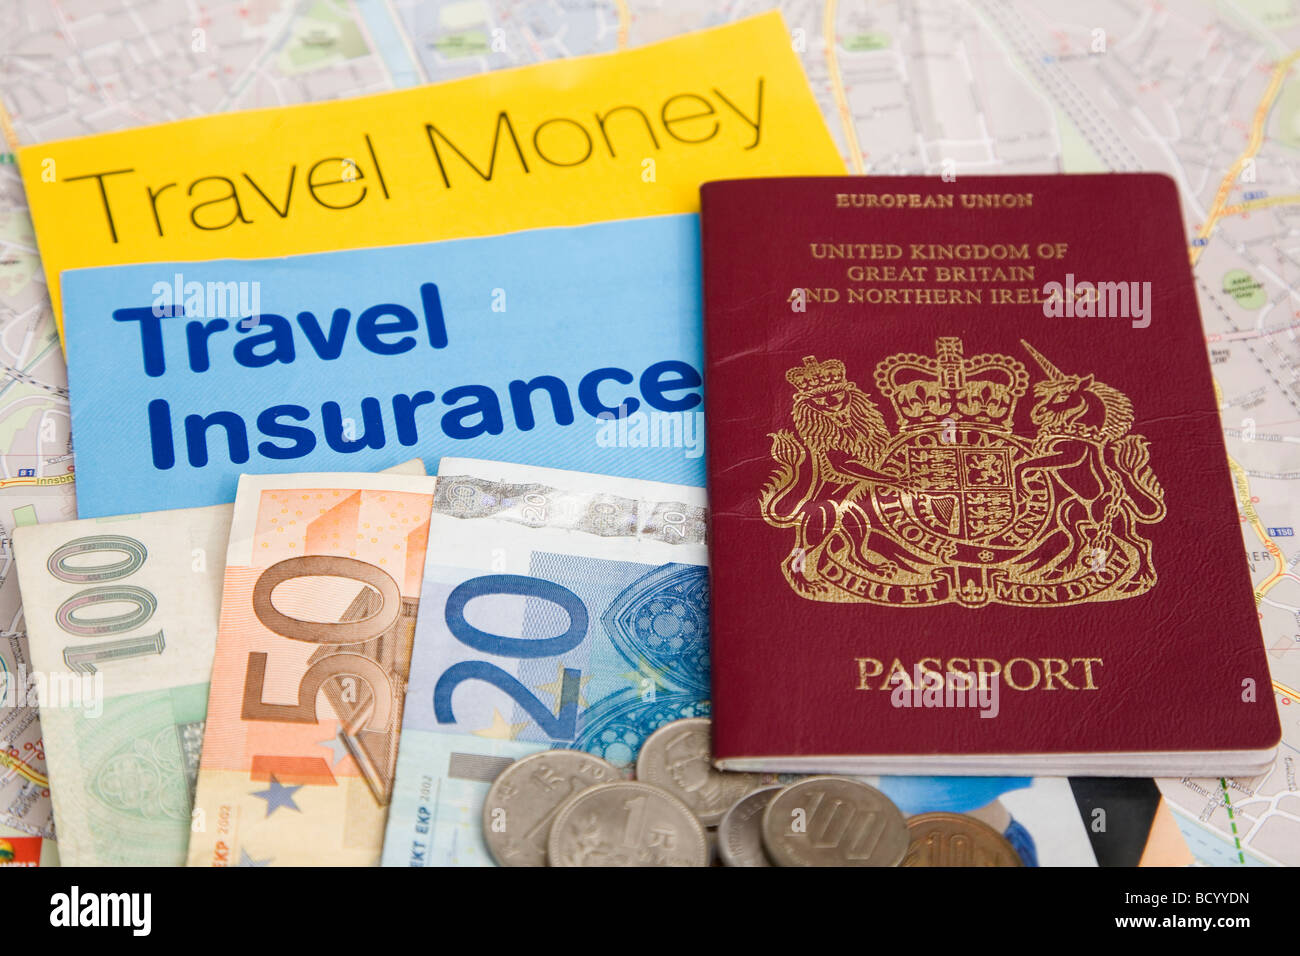 Preparation for a foreign vacation. A British EU passport travel insurance and travel money brochures can be seen. - Stock Image